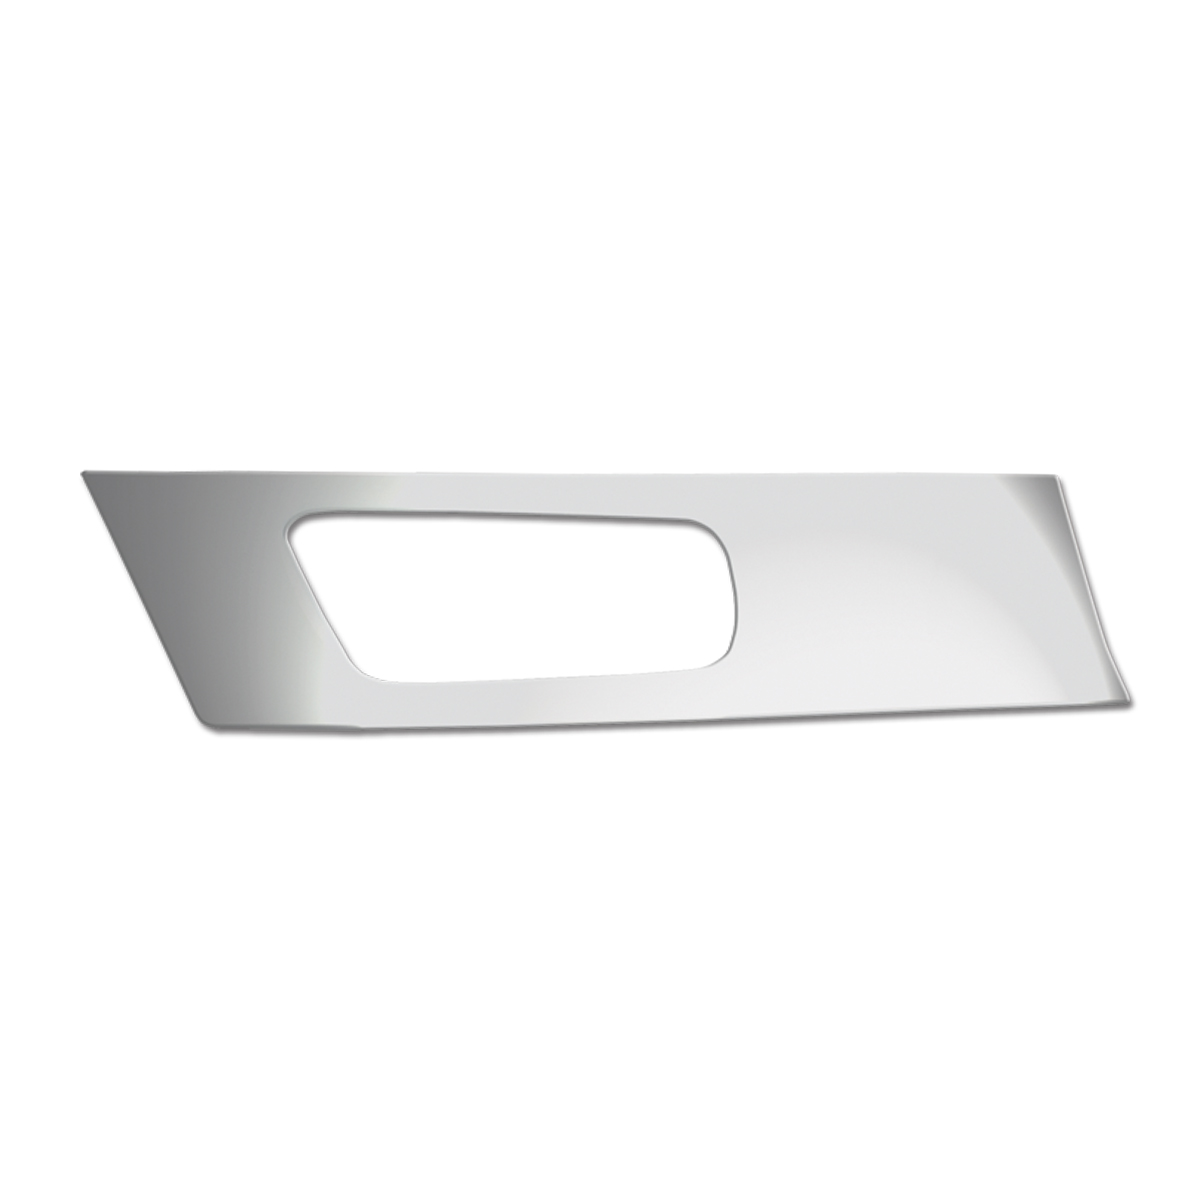 68922 KW Chrome Soft Plastic Driver Side Door Panel